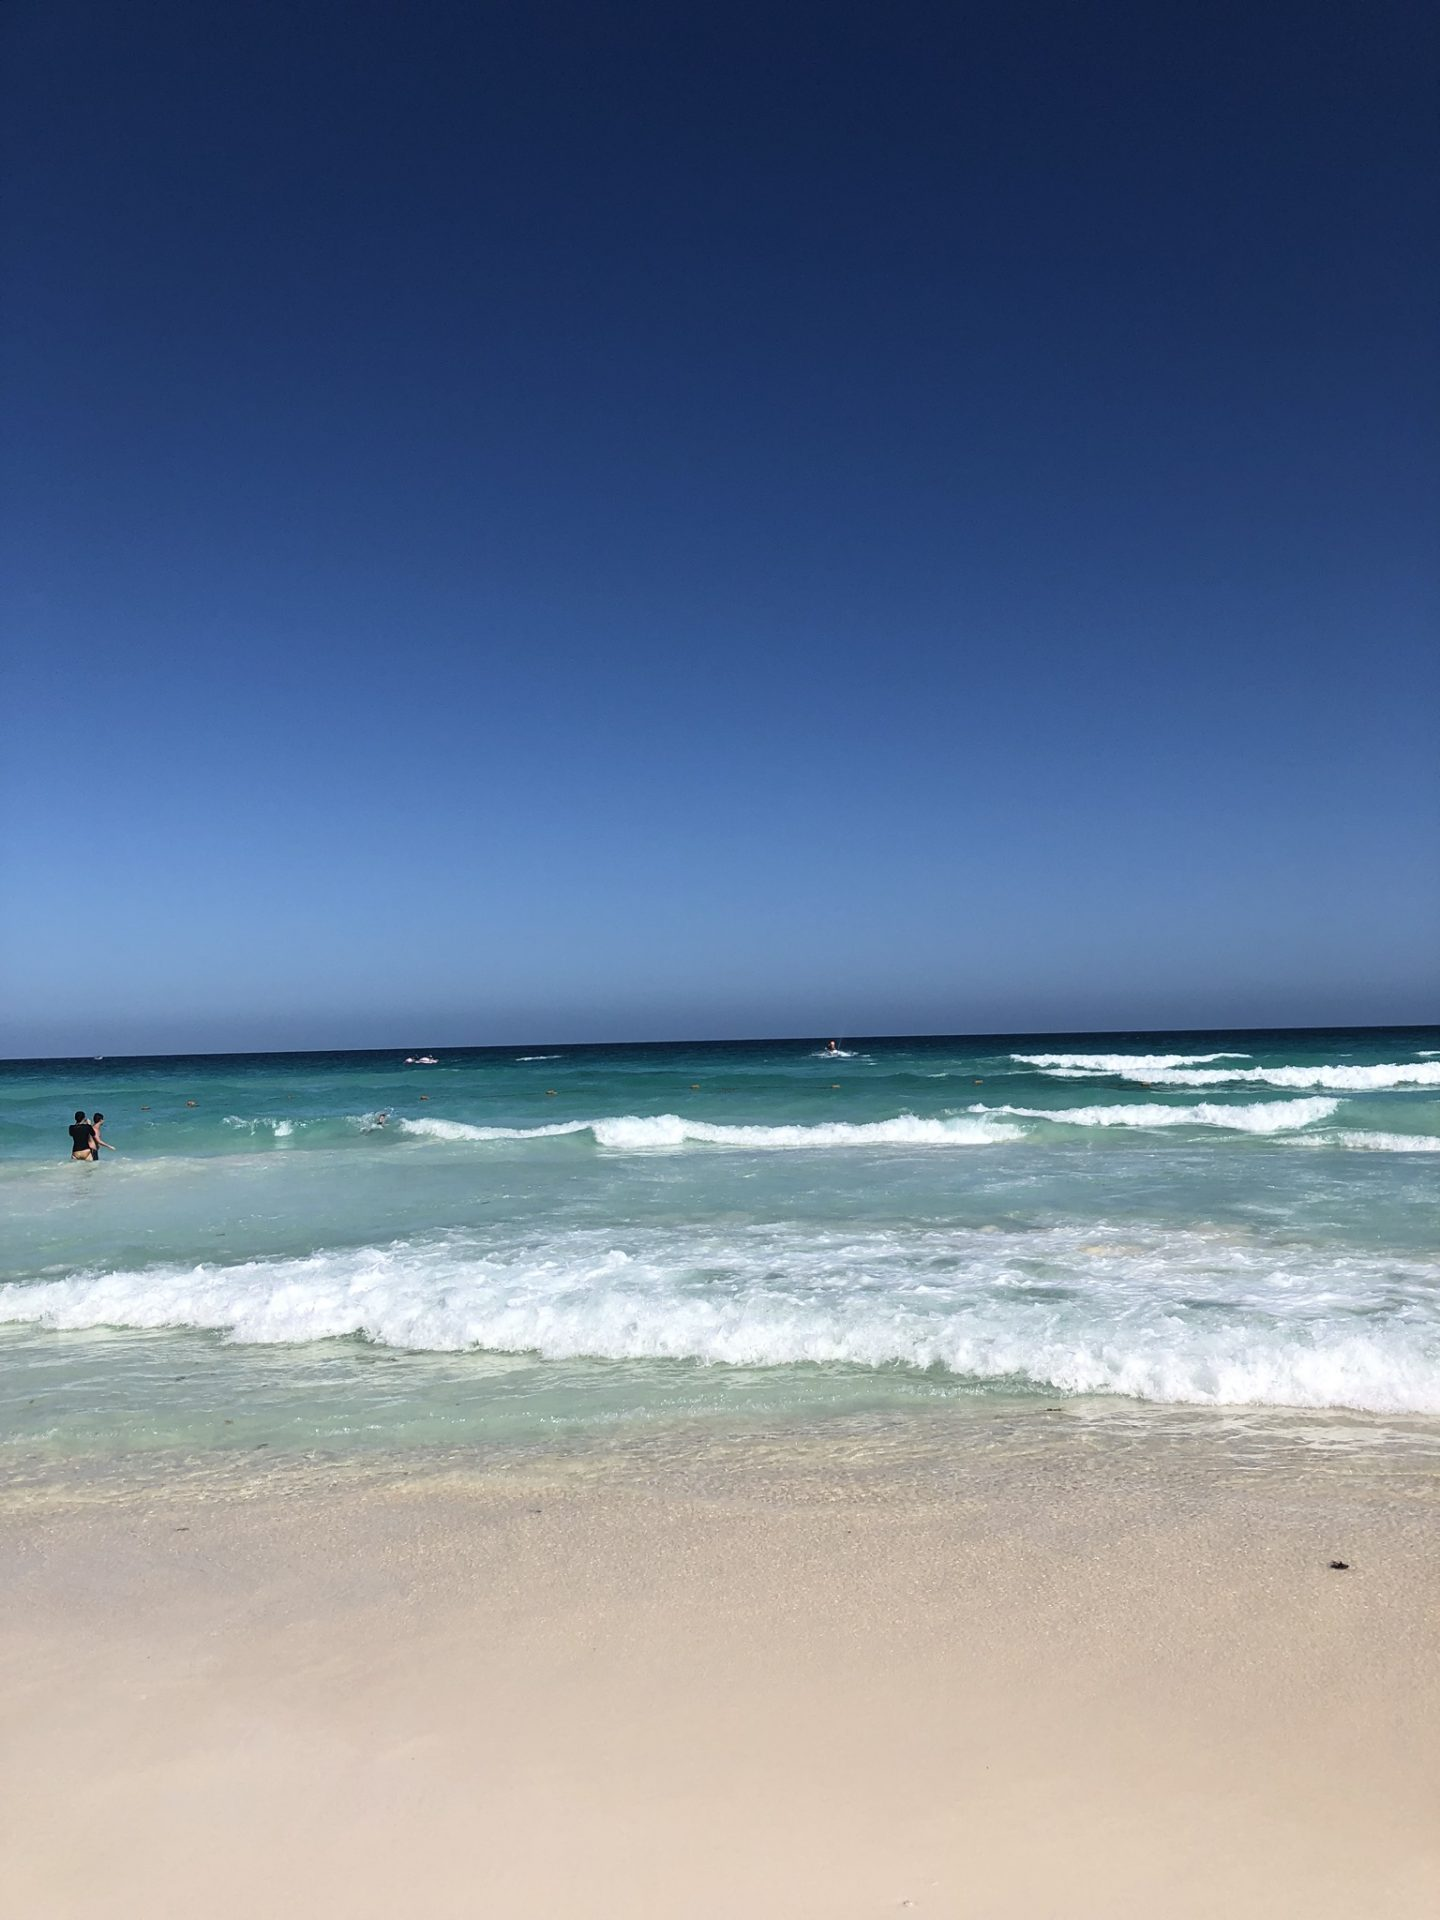 Caribbean Sea in Cancún, Mexico